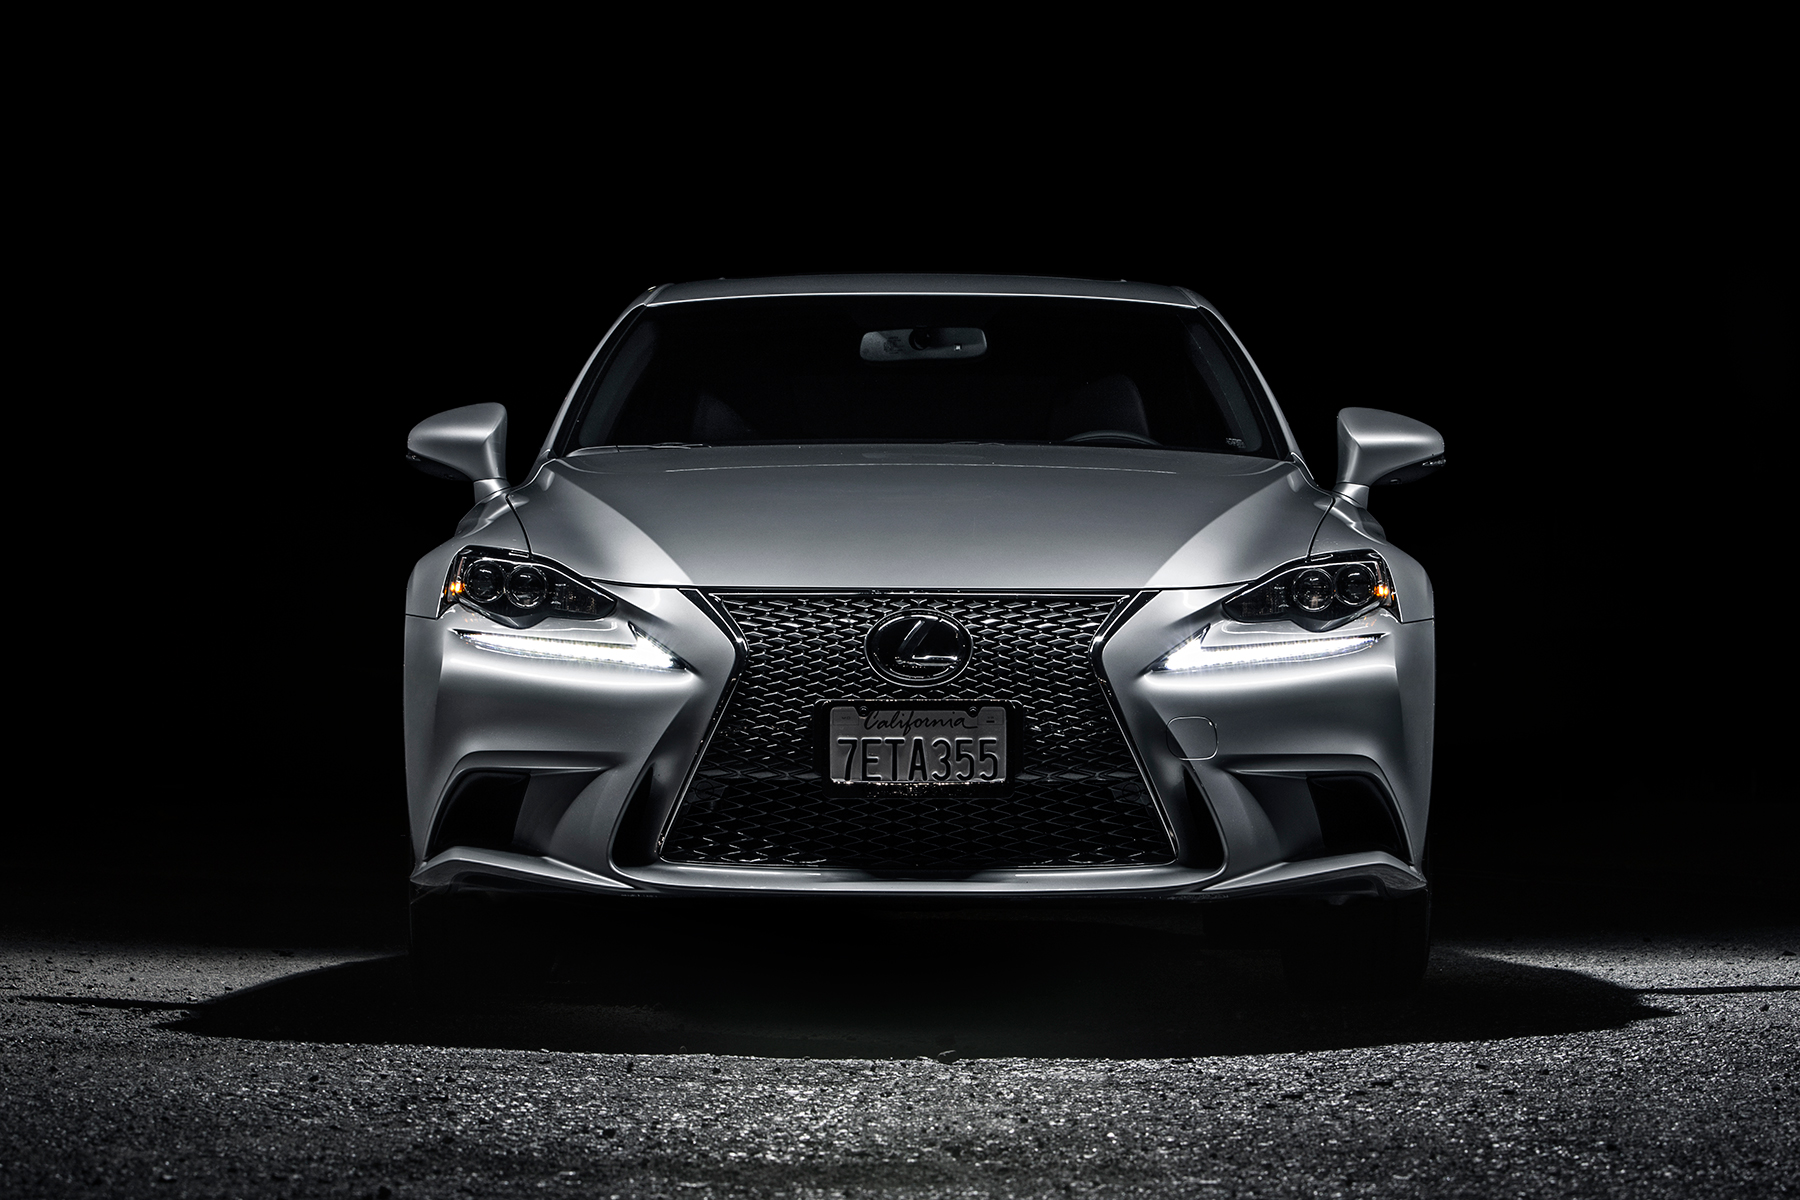 a closer look at the 2015 lexus is350 f sport hypebeast. Black Bedroom Furniture Sets. Home Design Ideas